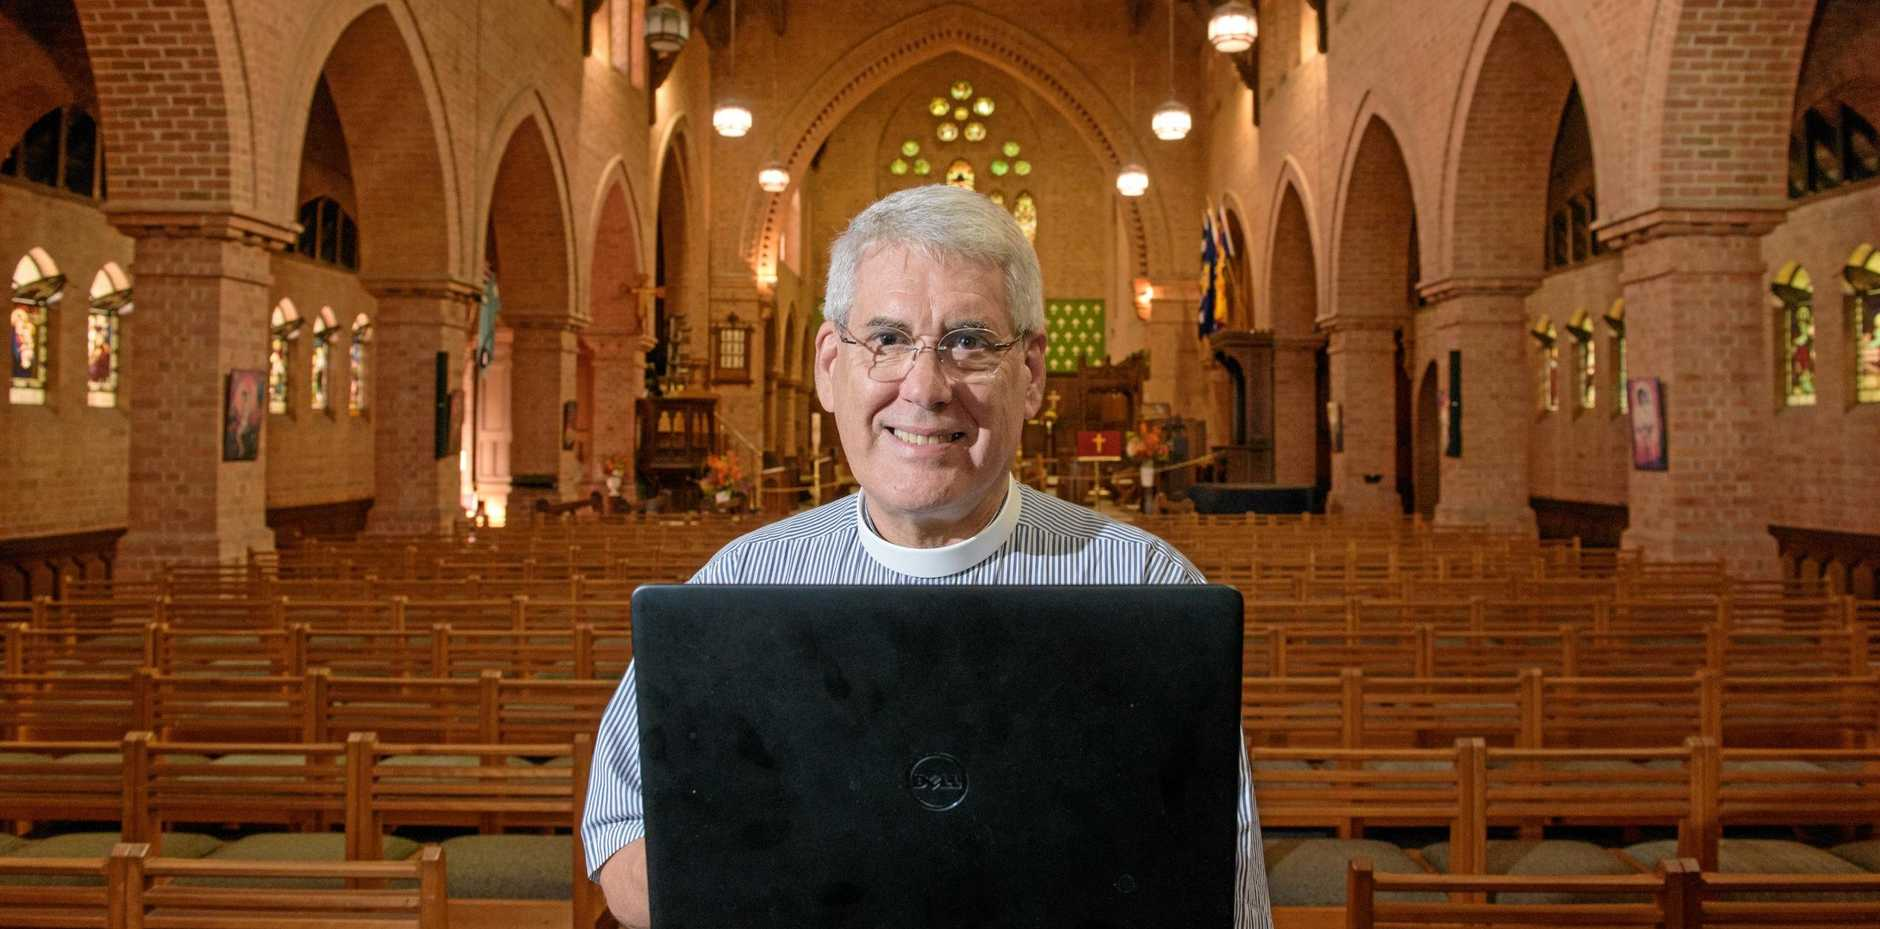 Rev Canon Greg Jenks logs onto the wireless in the Christchurch Cathedral.